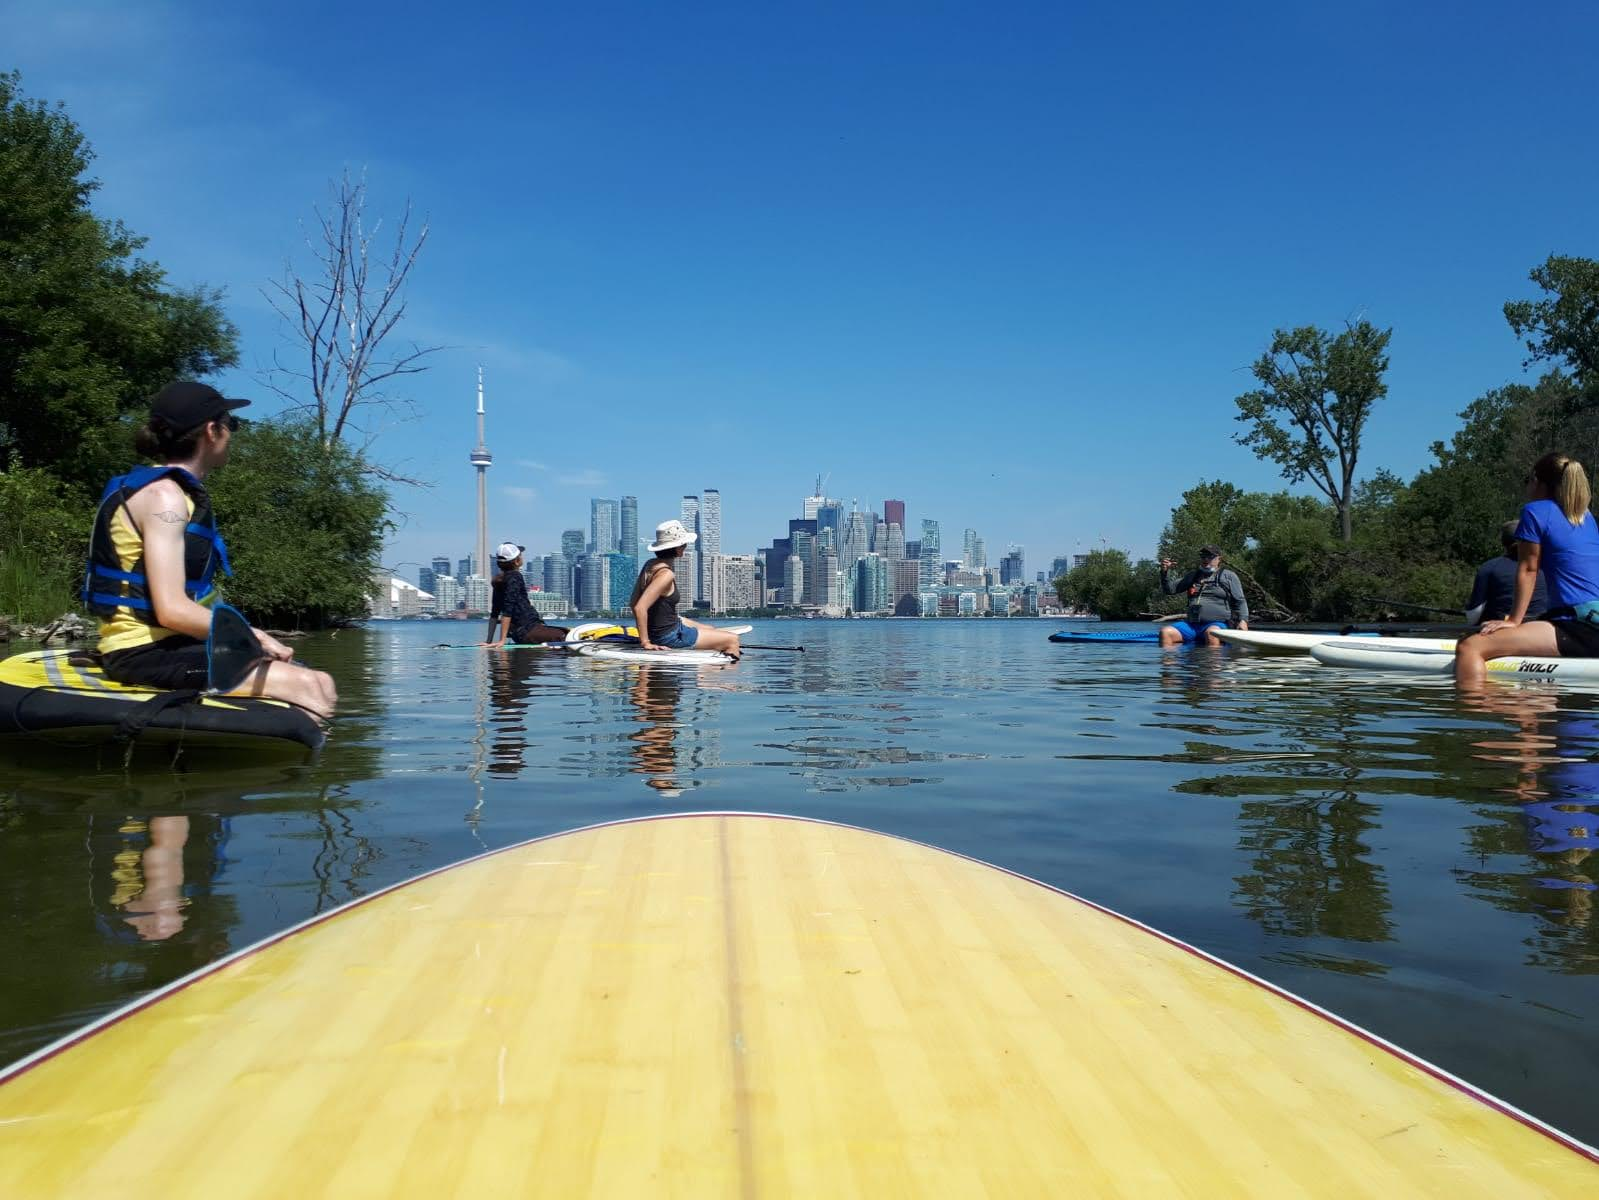 paddle boarders with the Toronto skyline in the background